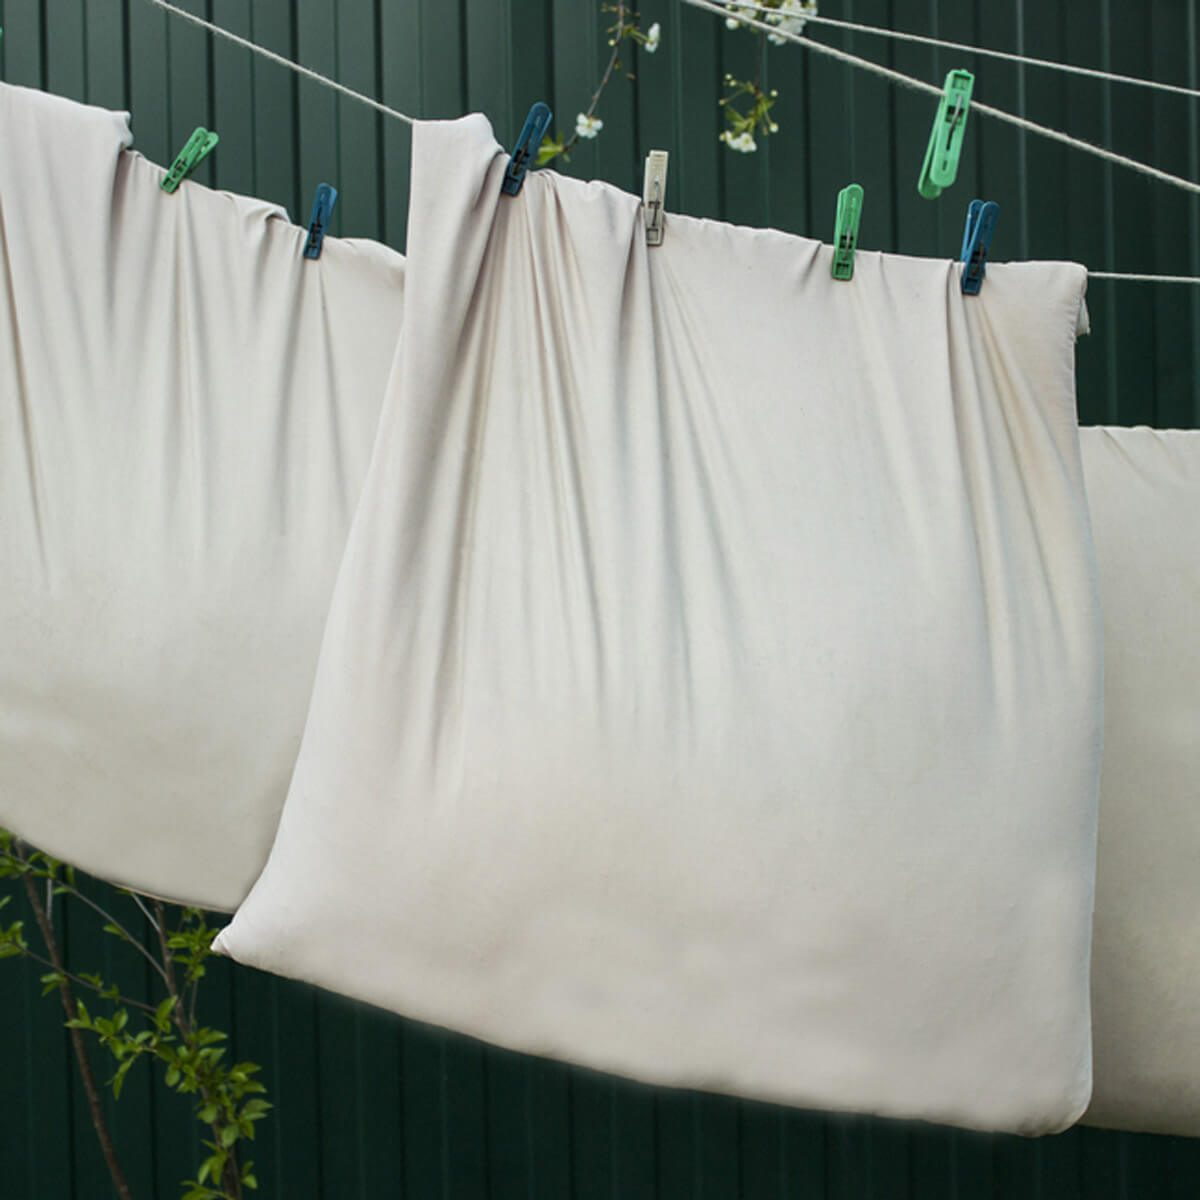 shutterstock_638110546 hang dry laundry pillow cases